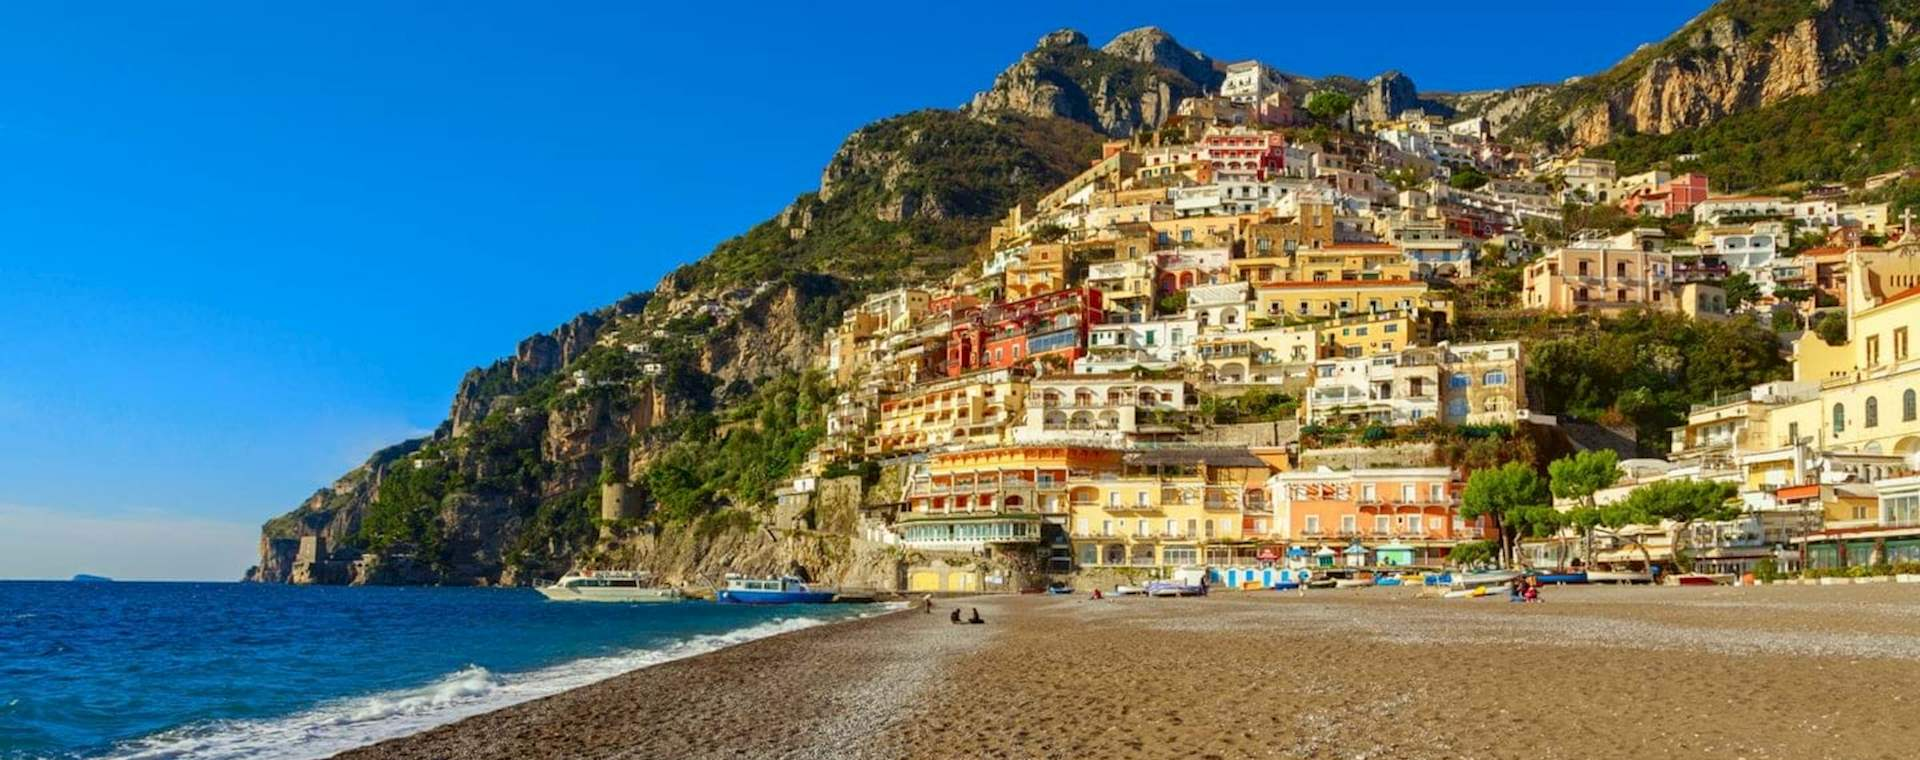 Best of the Amalfi Coast from Sorrento with Boat Tour